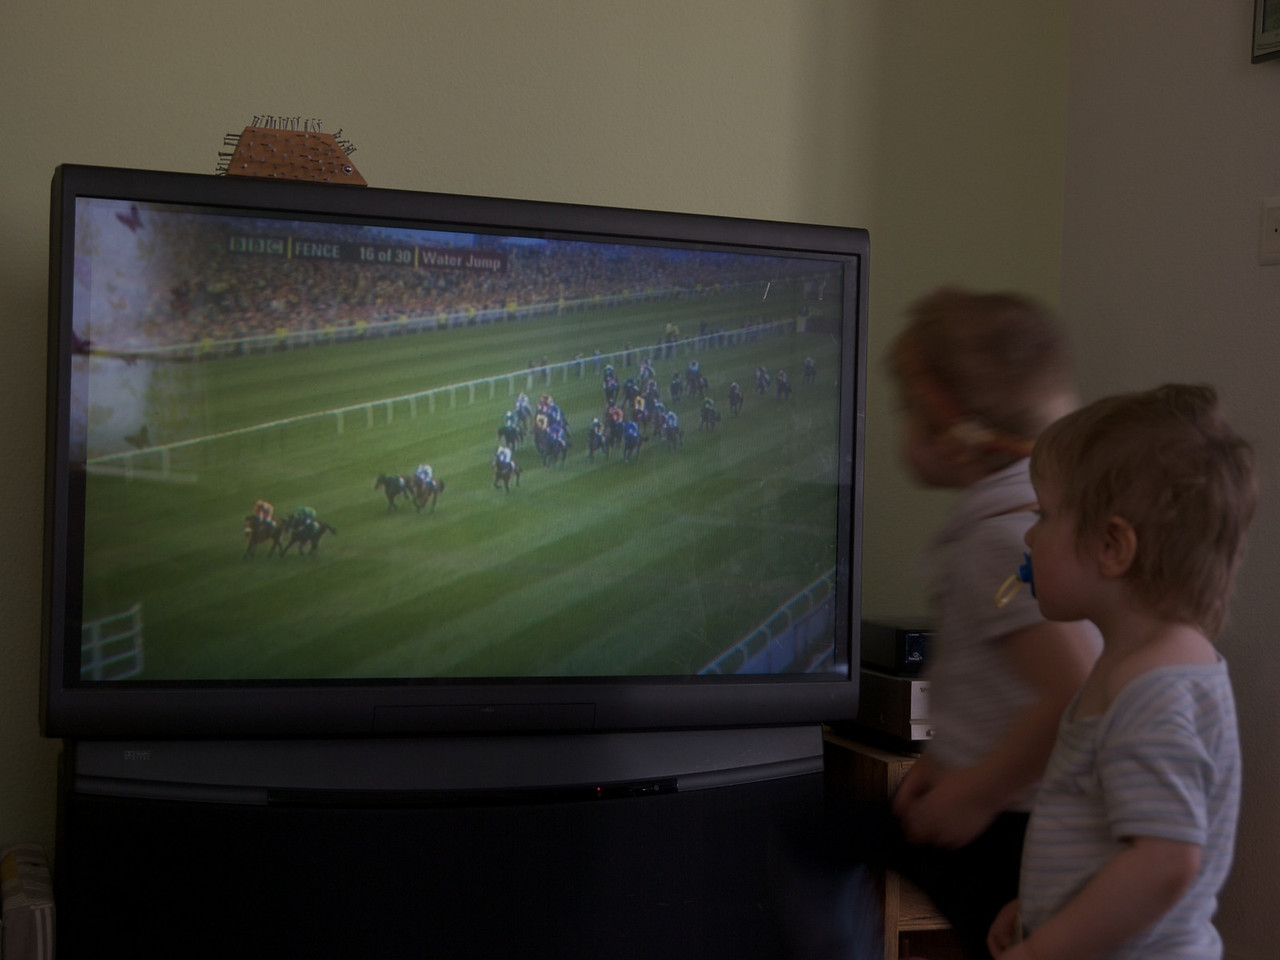 Sunday 11th April 2010 - The boys take a break from annoying each other to watch the grand national